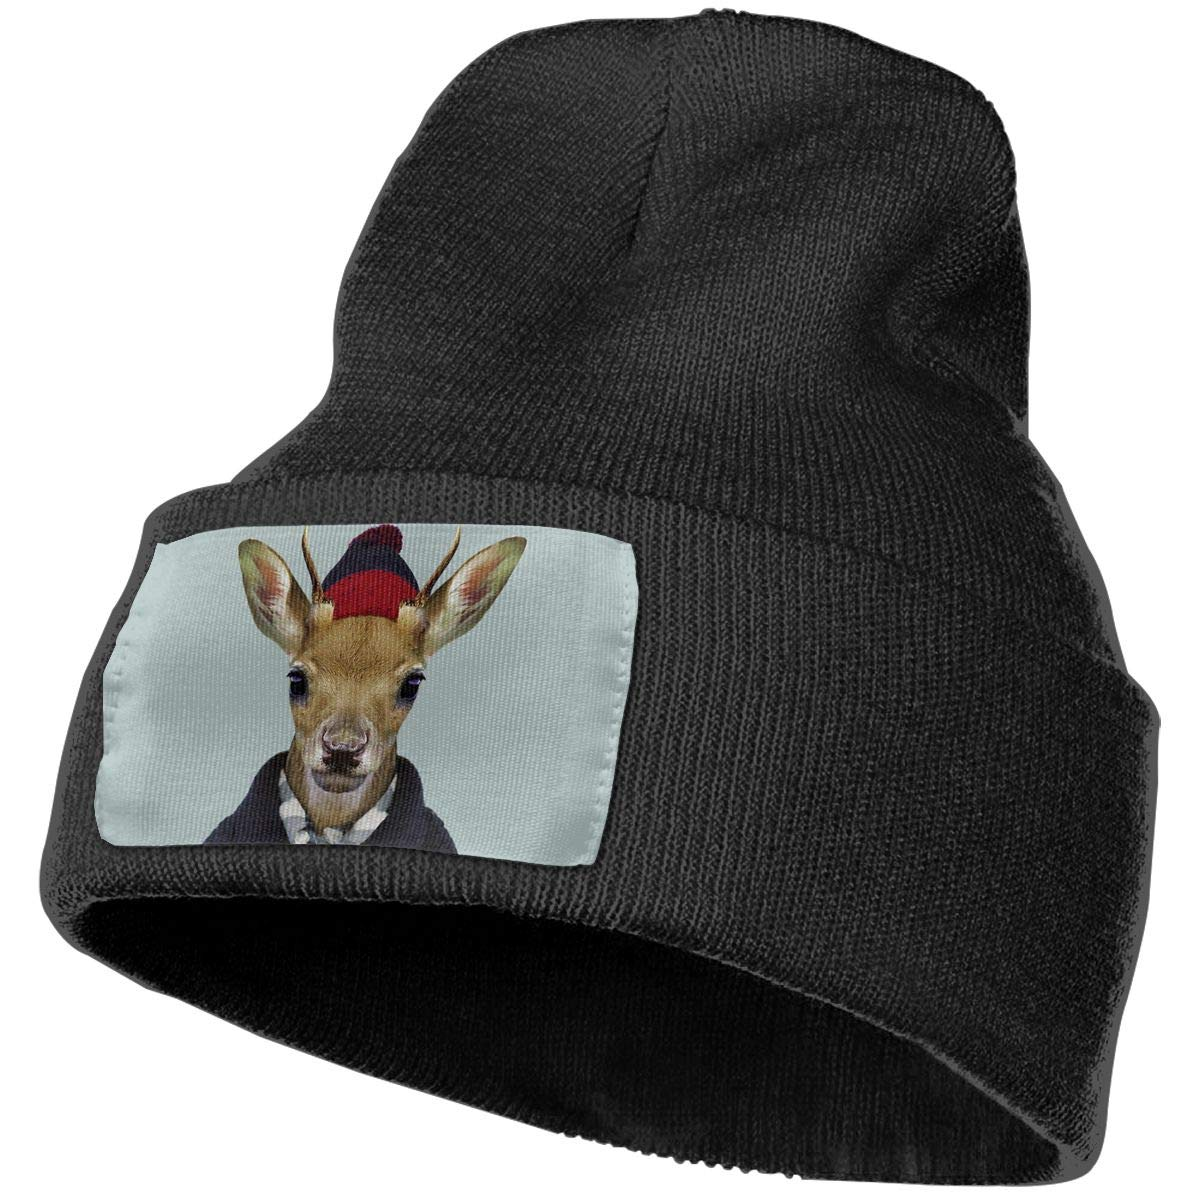 Animals Dressed Like Humans Beanie Hat Cuffed Plain Skull Knitted Cap Fashion